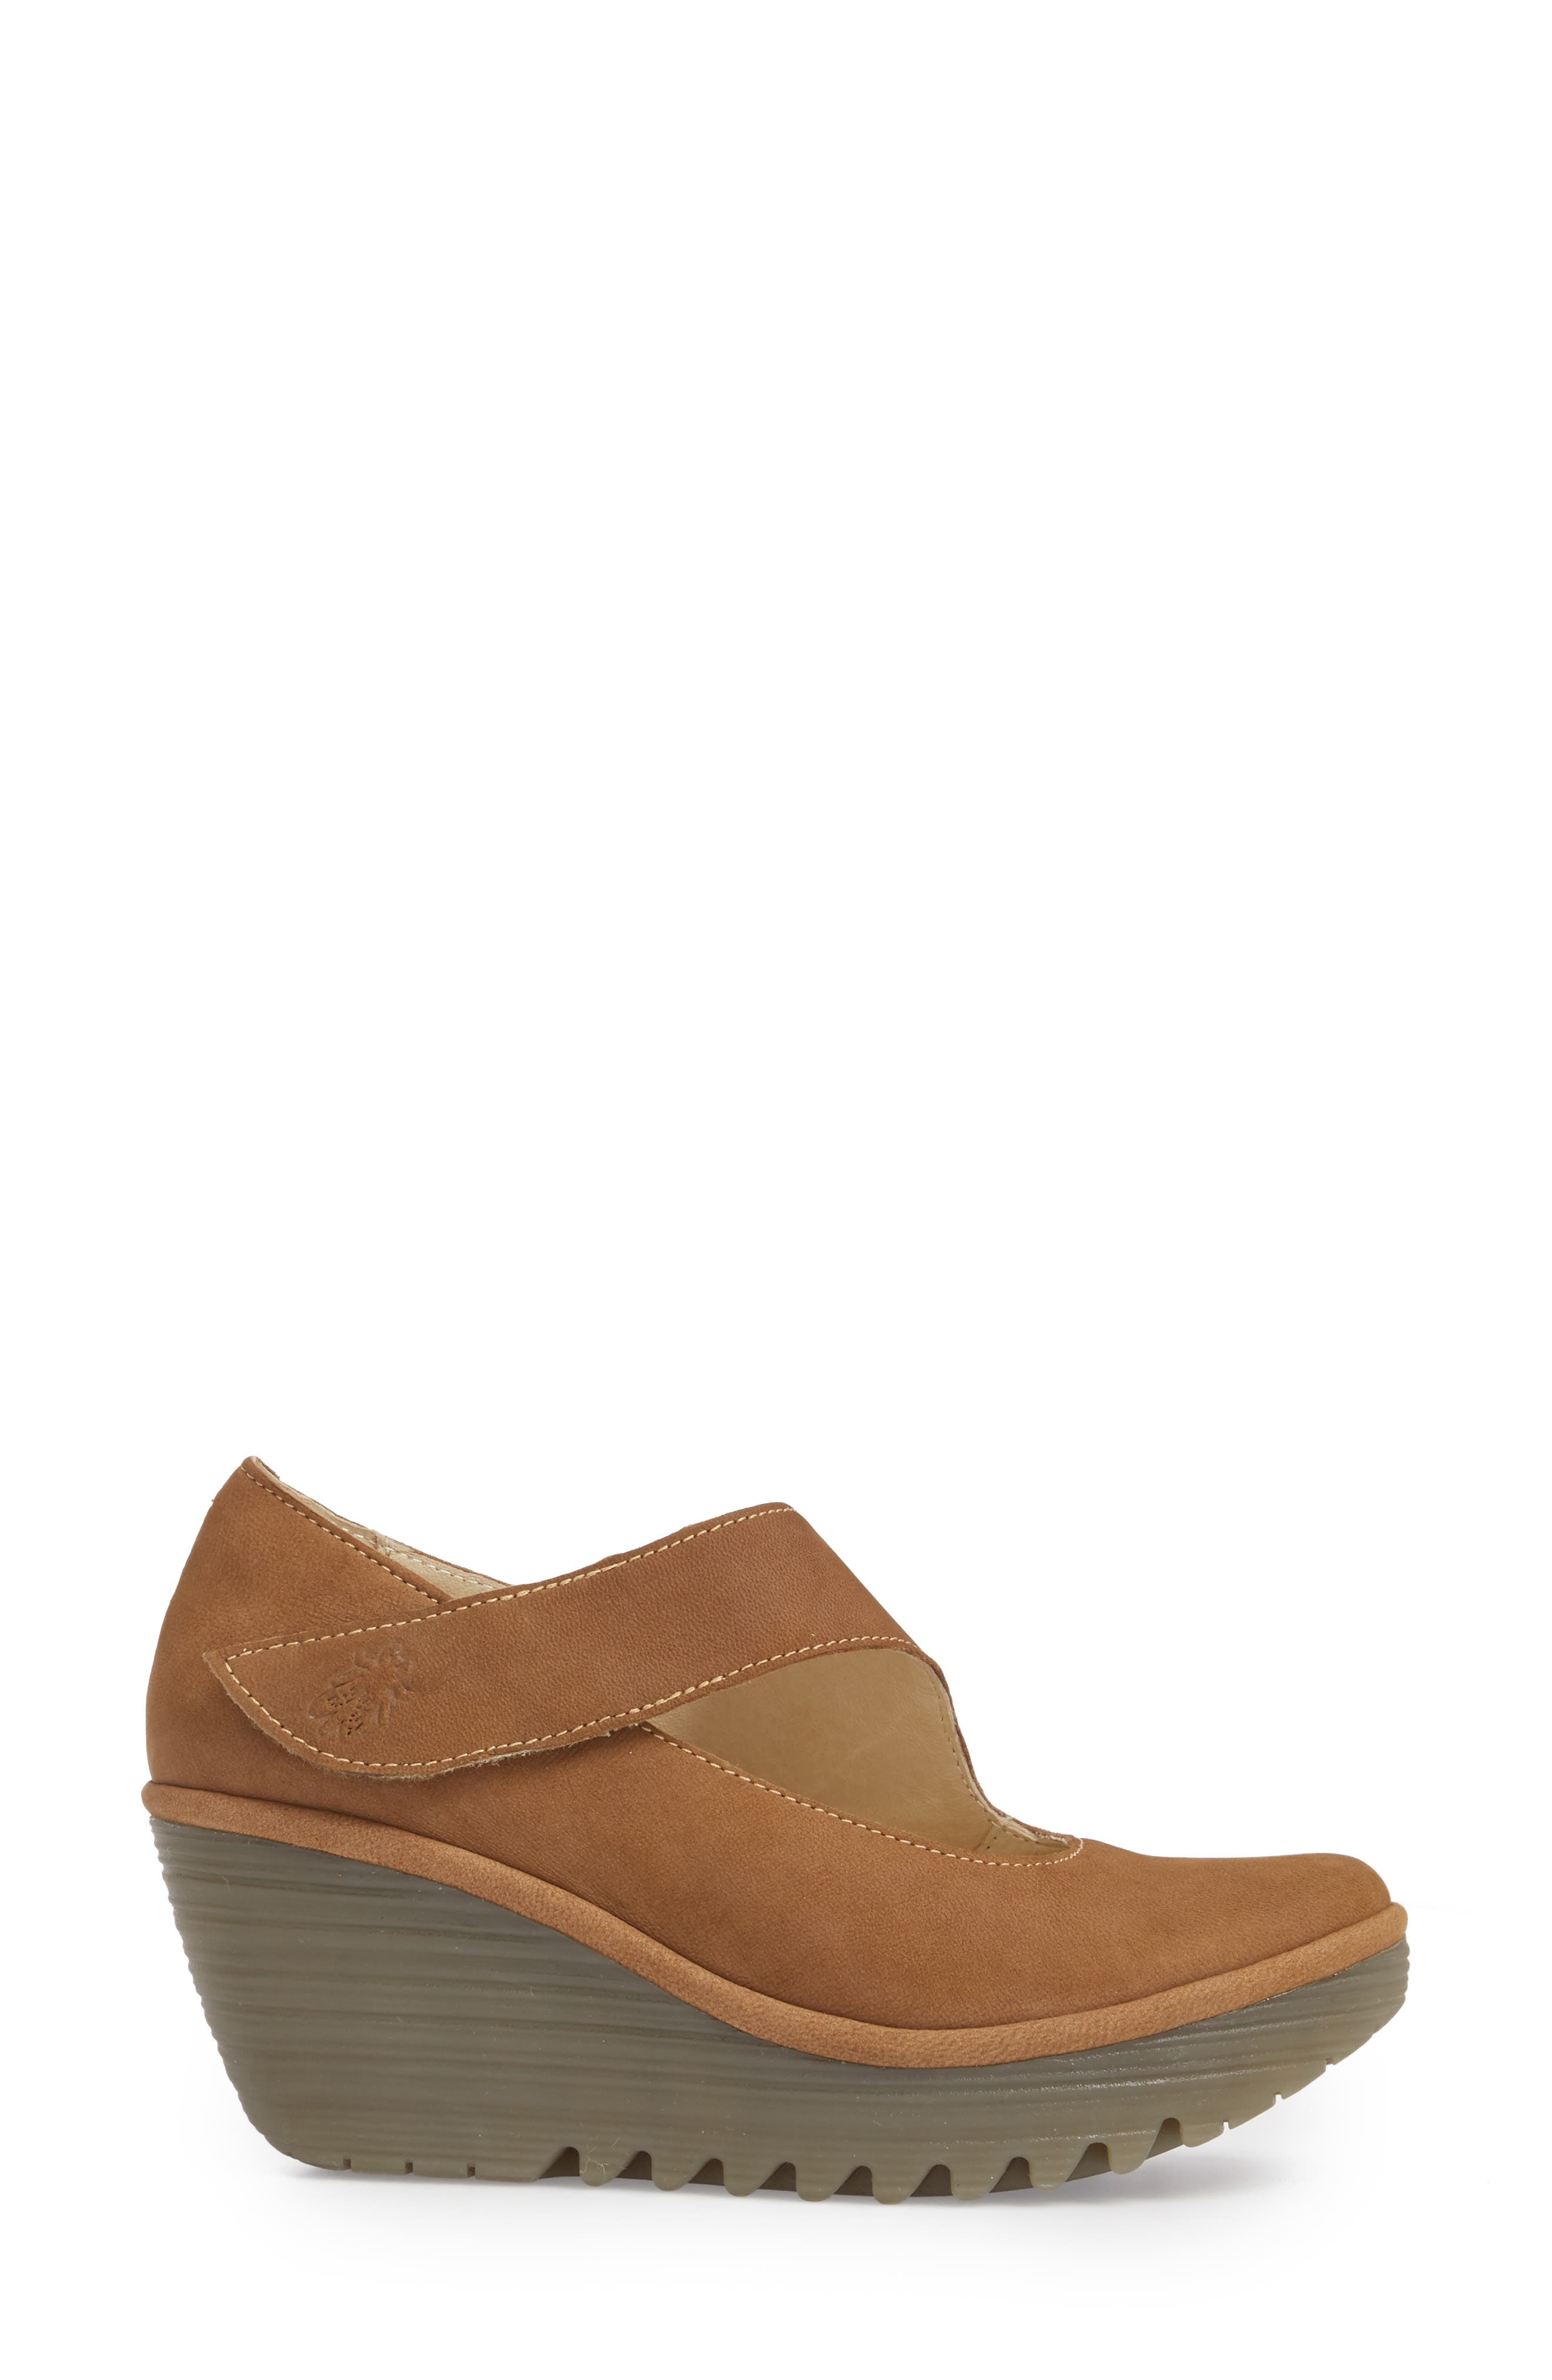 'Yasi' Wedge Pump,                             Alternate thumbnail 3, color,                             SAND CUPIDO LEATHER